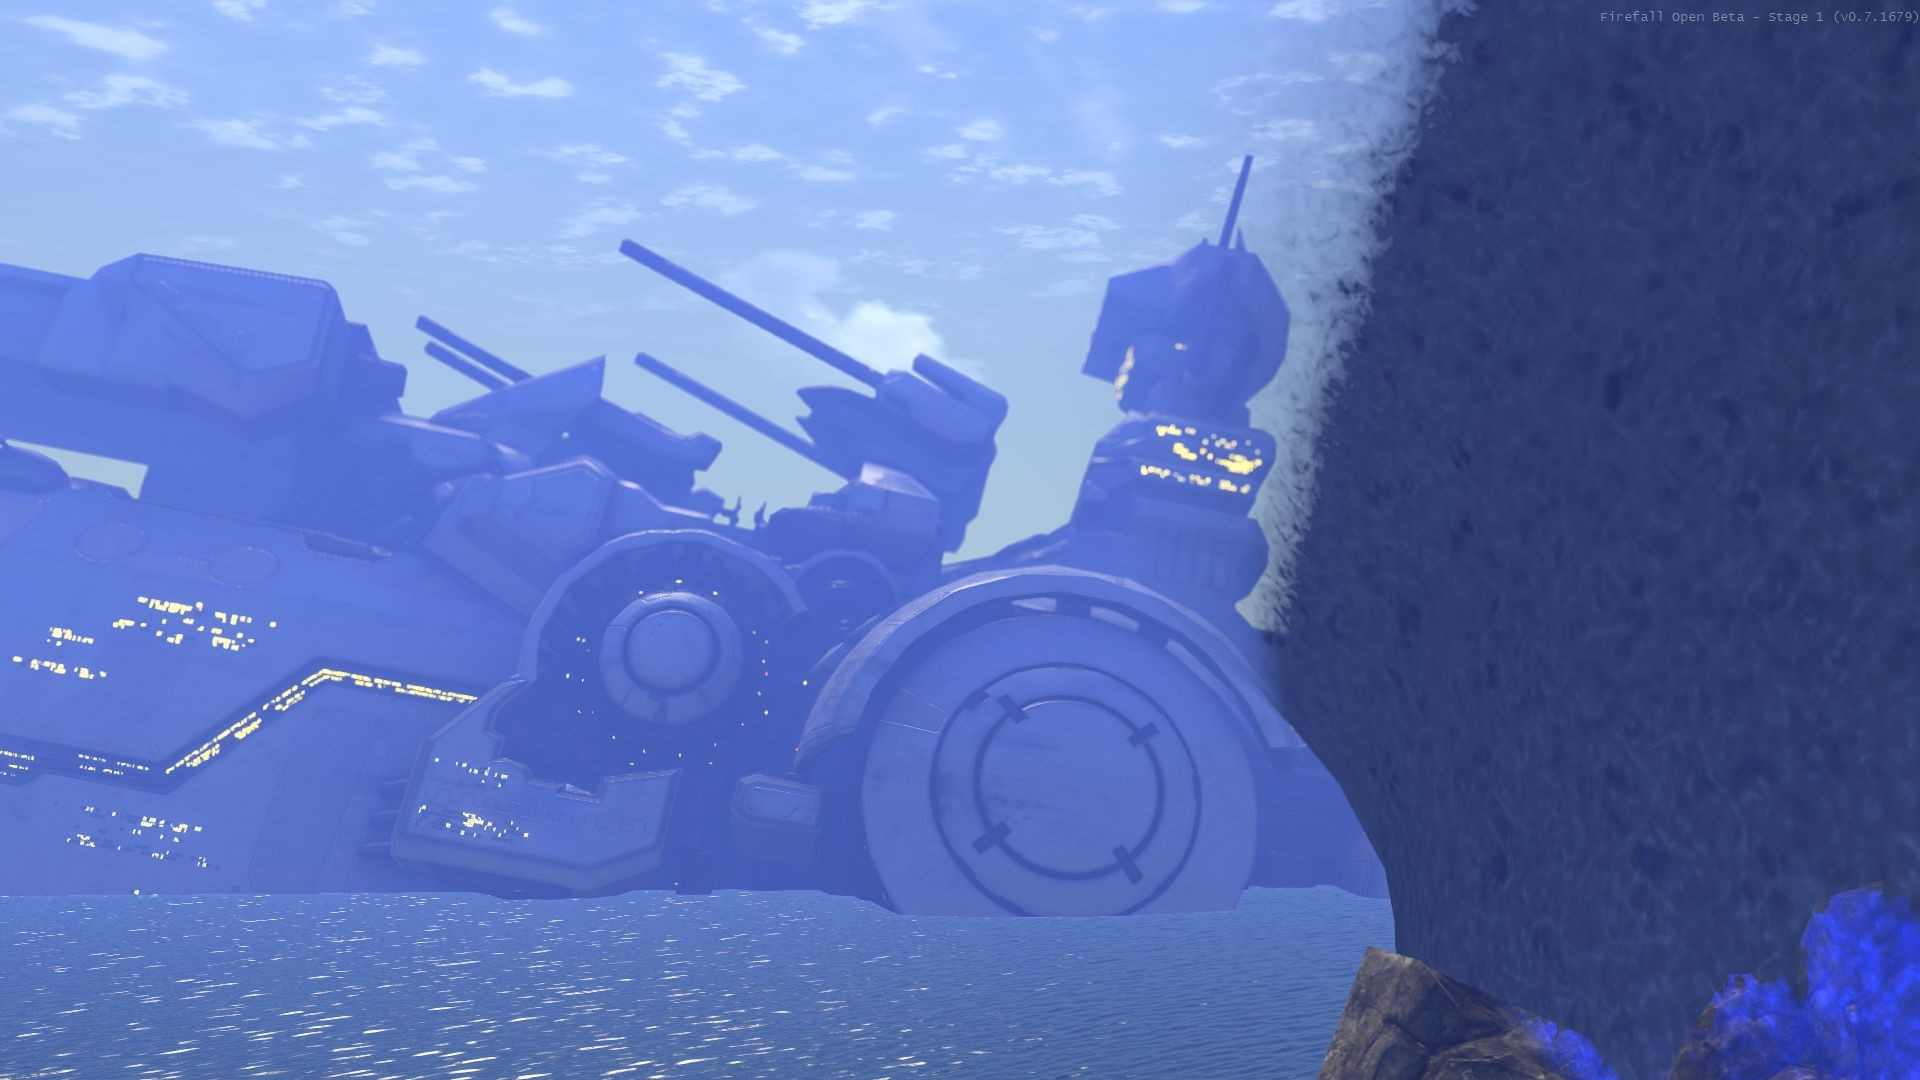 Firefall - doubt yu culd get closer to arclight whilst still bein on dry ground :)